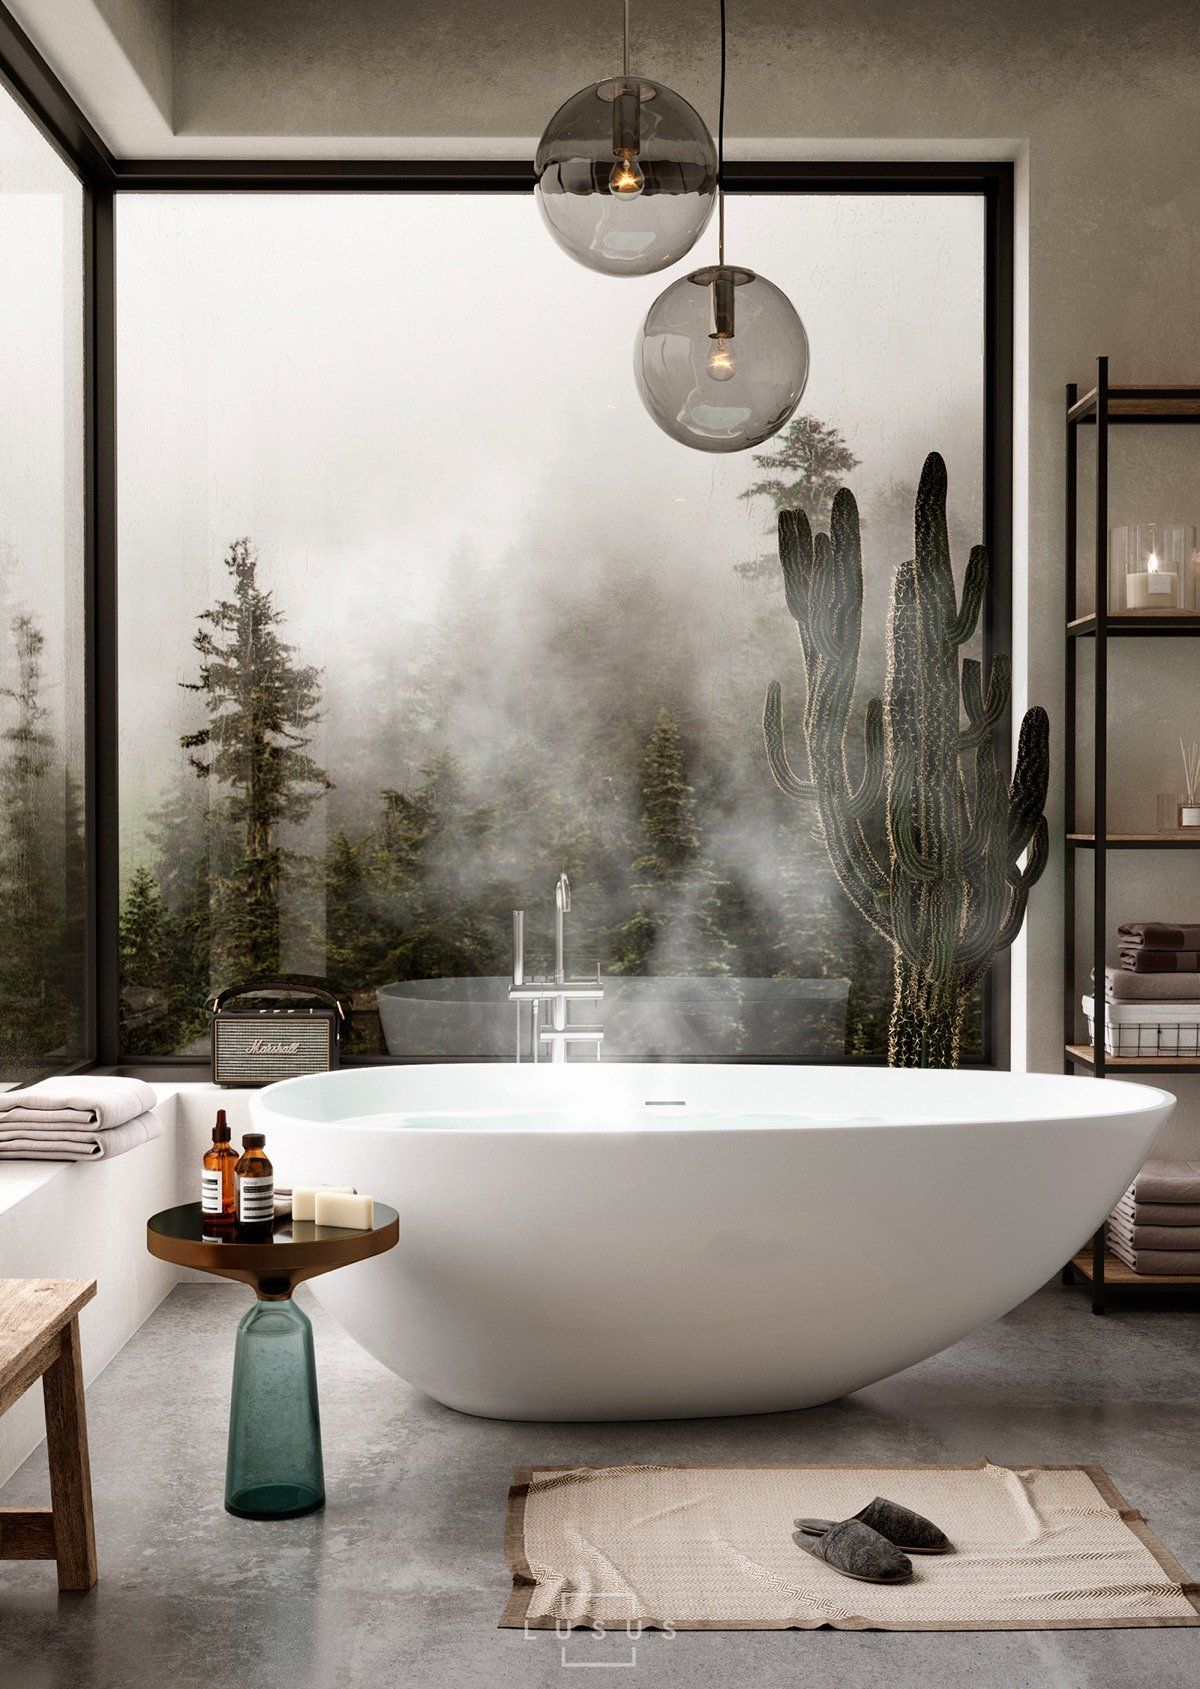 High End Bathroom Furniture Luxury 50 Luxury Bathrooms And Tips You Can Copy From Them In 2020 Bathroom Design Luxury Luxury Bathroom Best Bathroom Designs